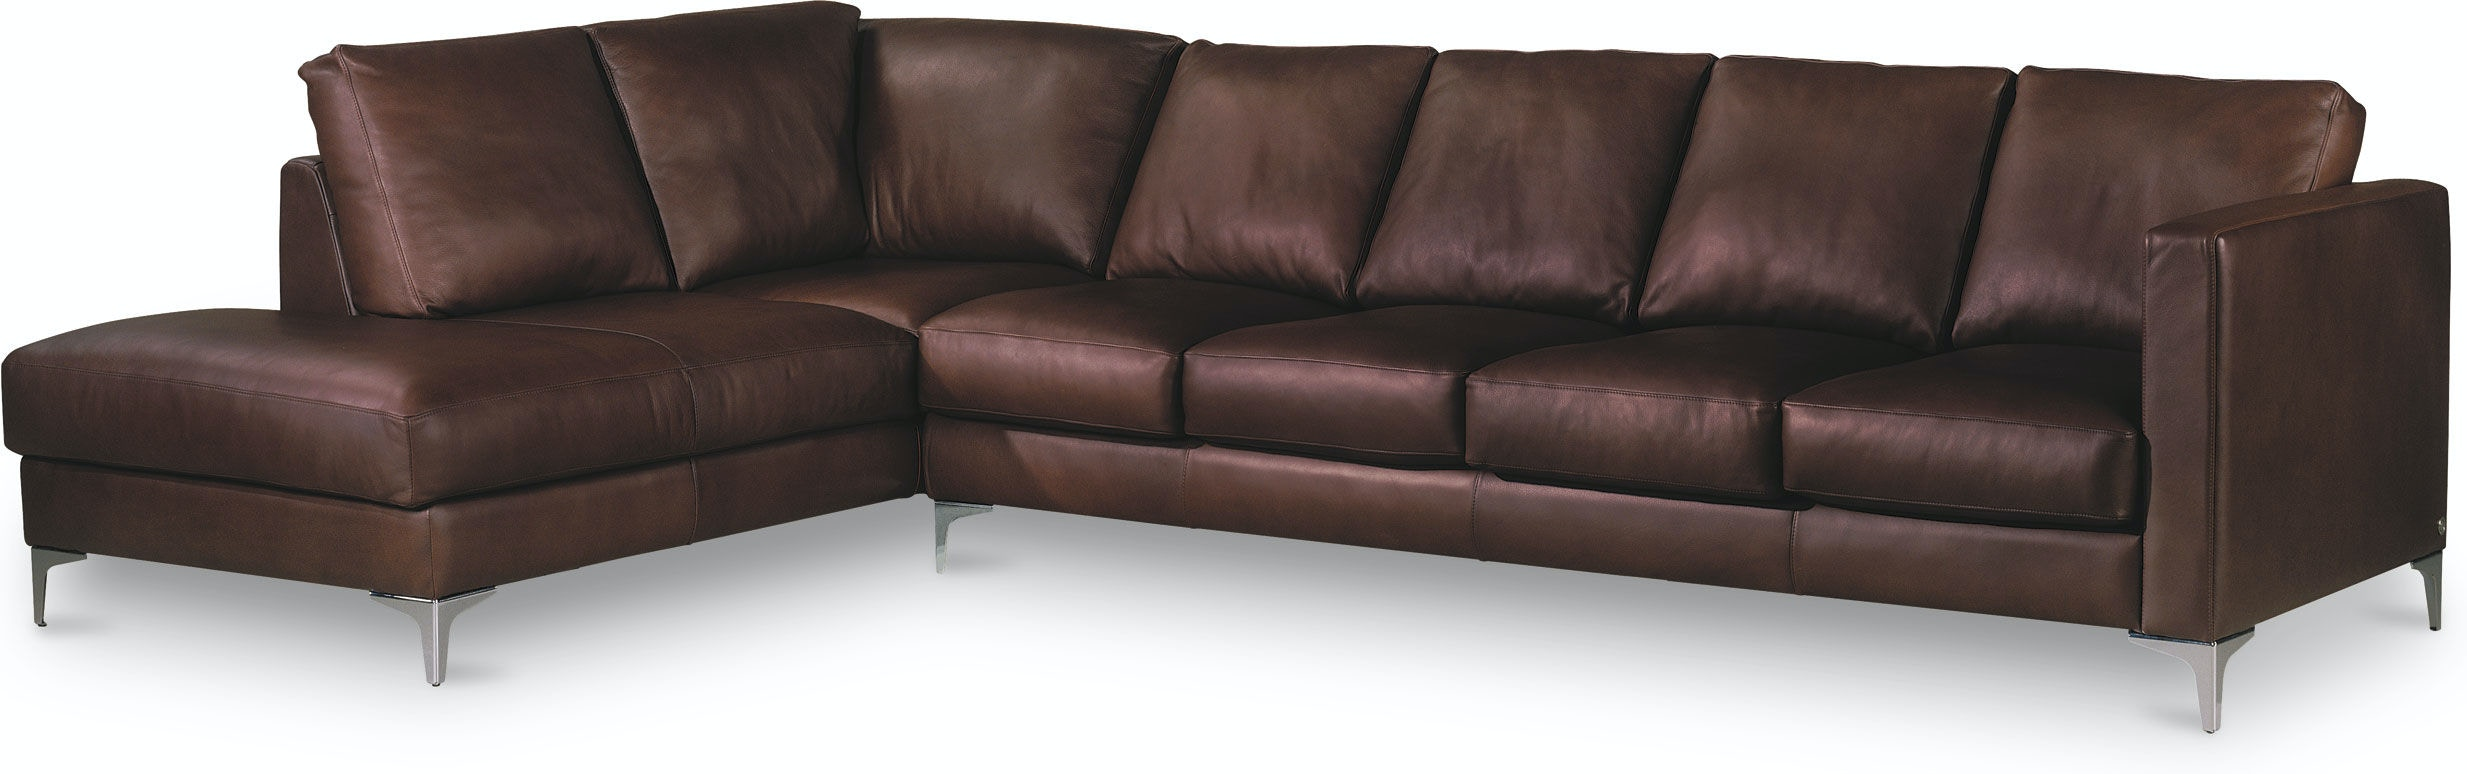 American Leather Kendall Sectional Kendall Sectional